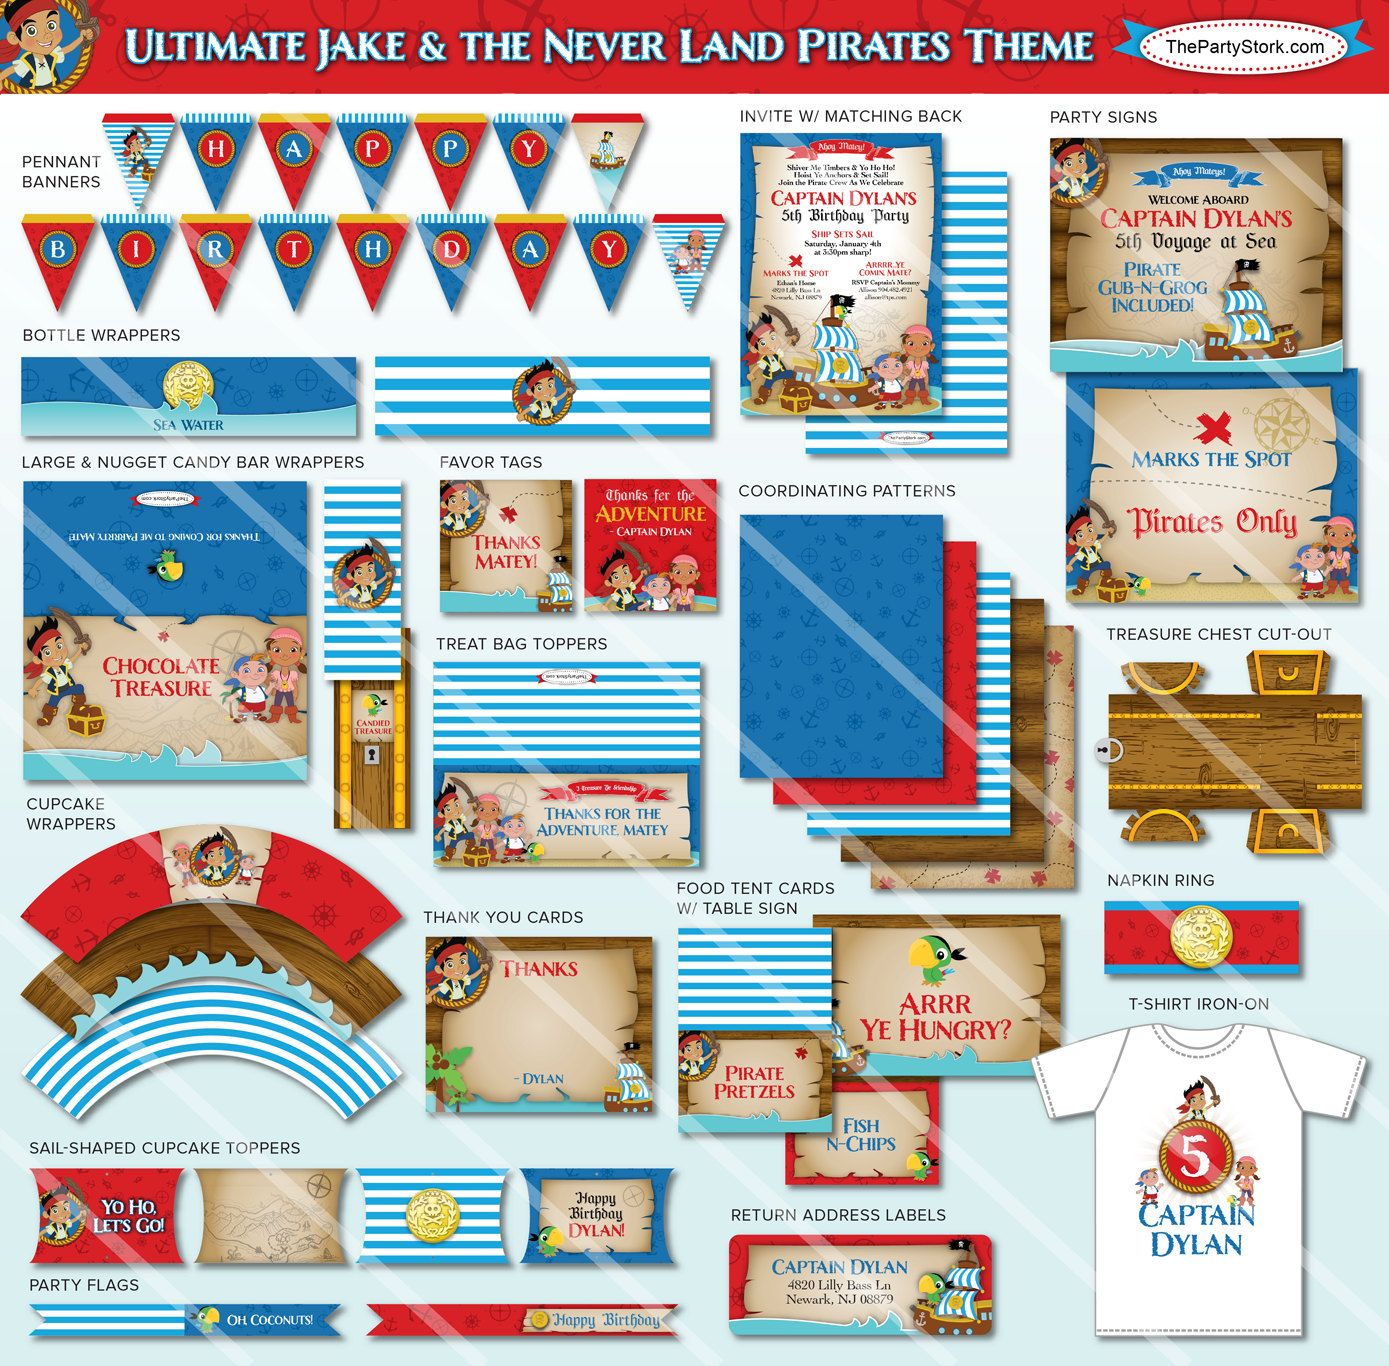 Jake and the neverland pirates treasure chest printable - Jake And The Neverland Pirate Invitations Jake And The Neverland Pirates Birthday Party Invites Printable Treasure Chest Envelope Diy